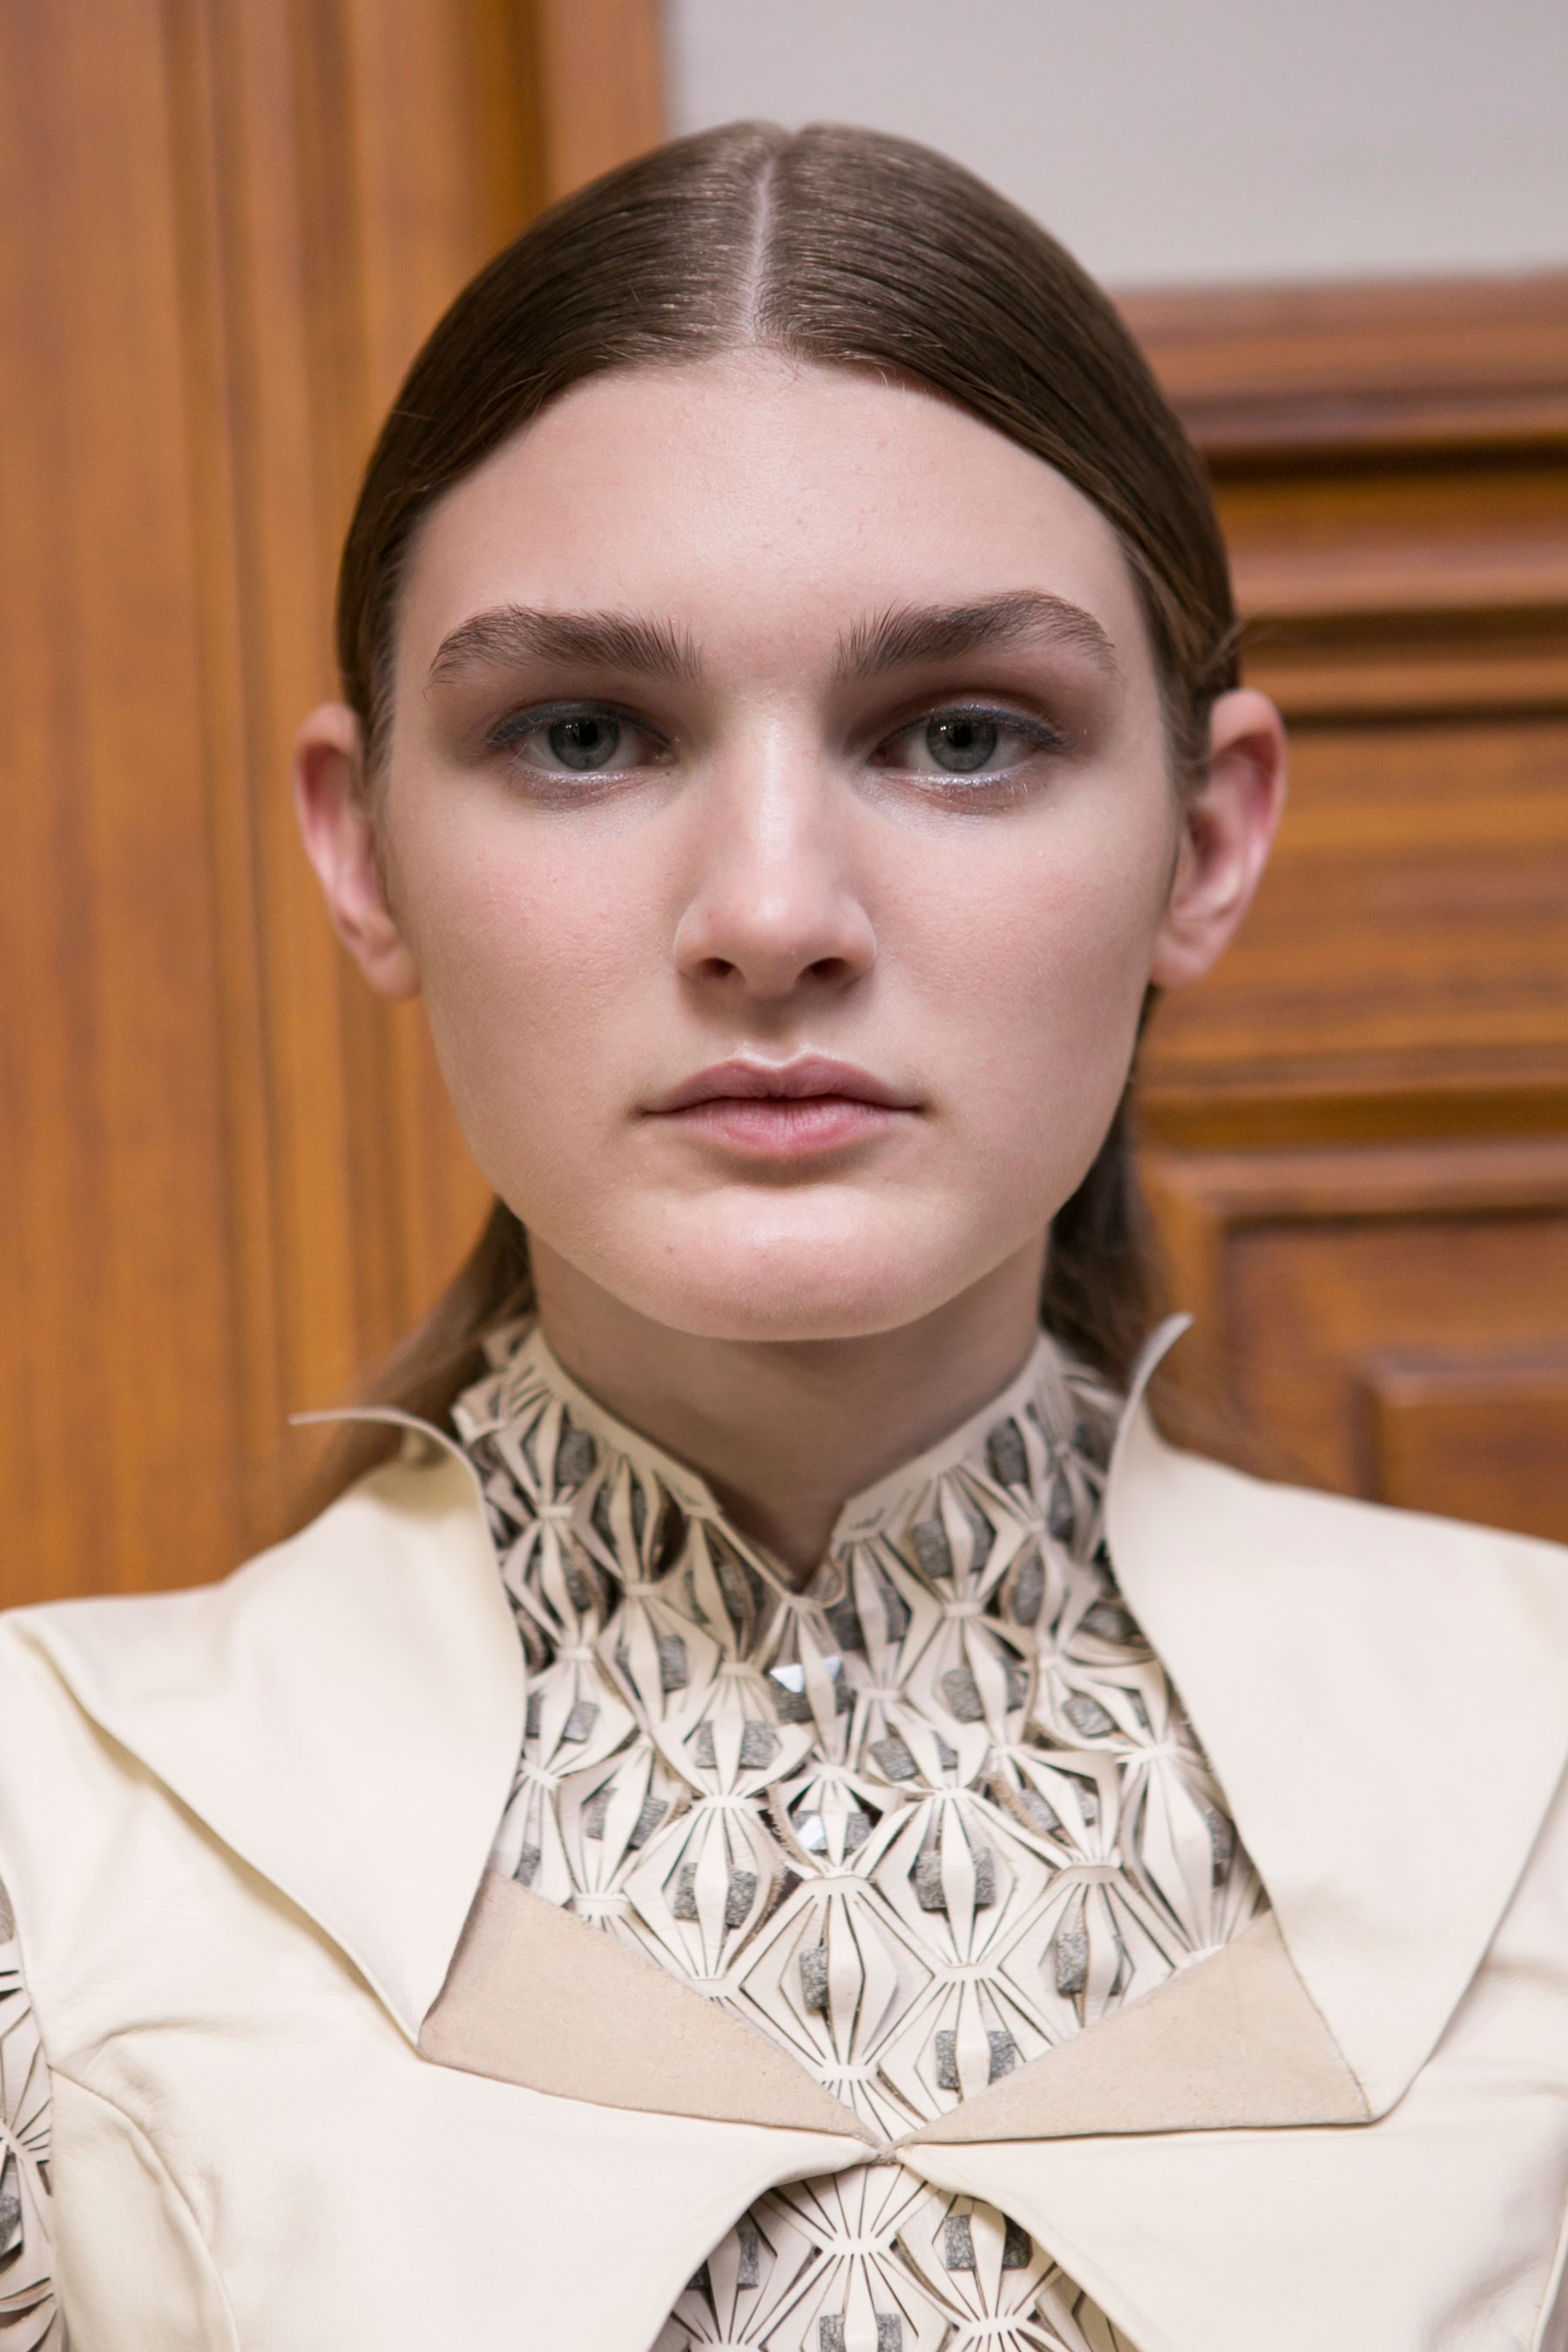 Iris-van-Herpen-spring-2016-beauty-fashion-show-the-impression-25